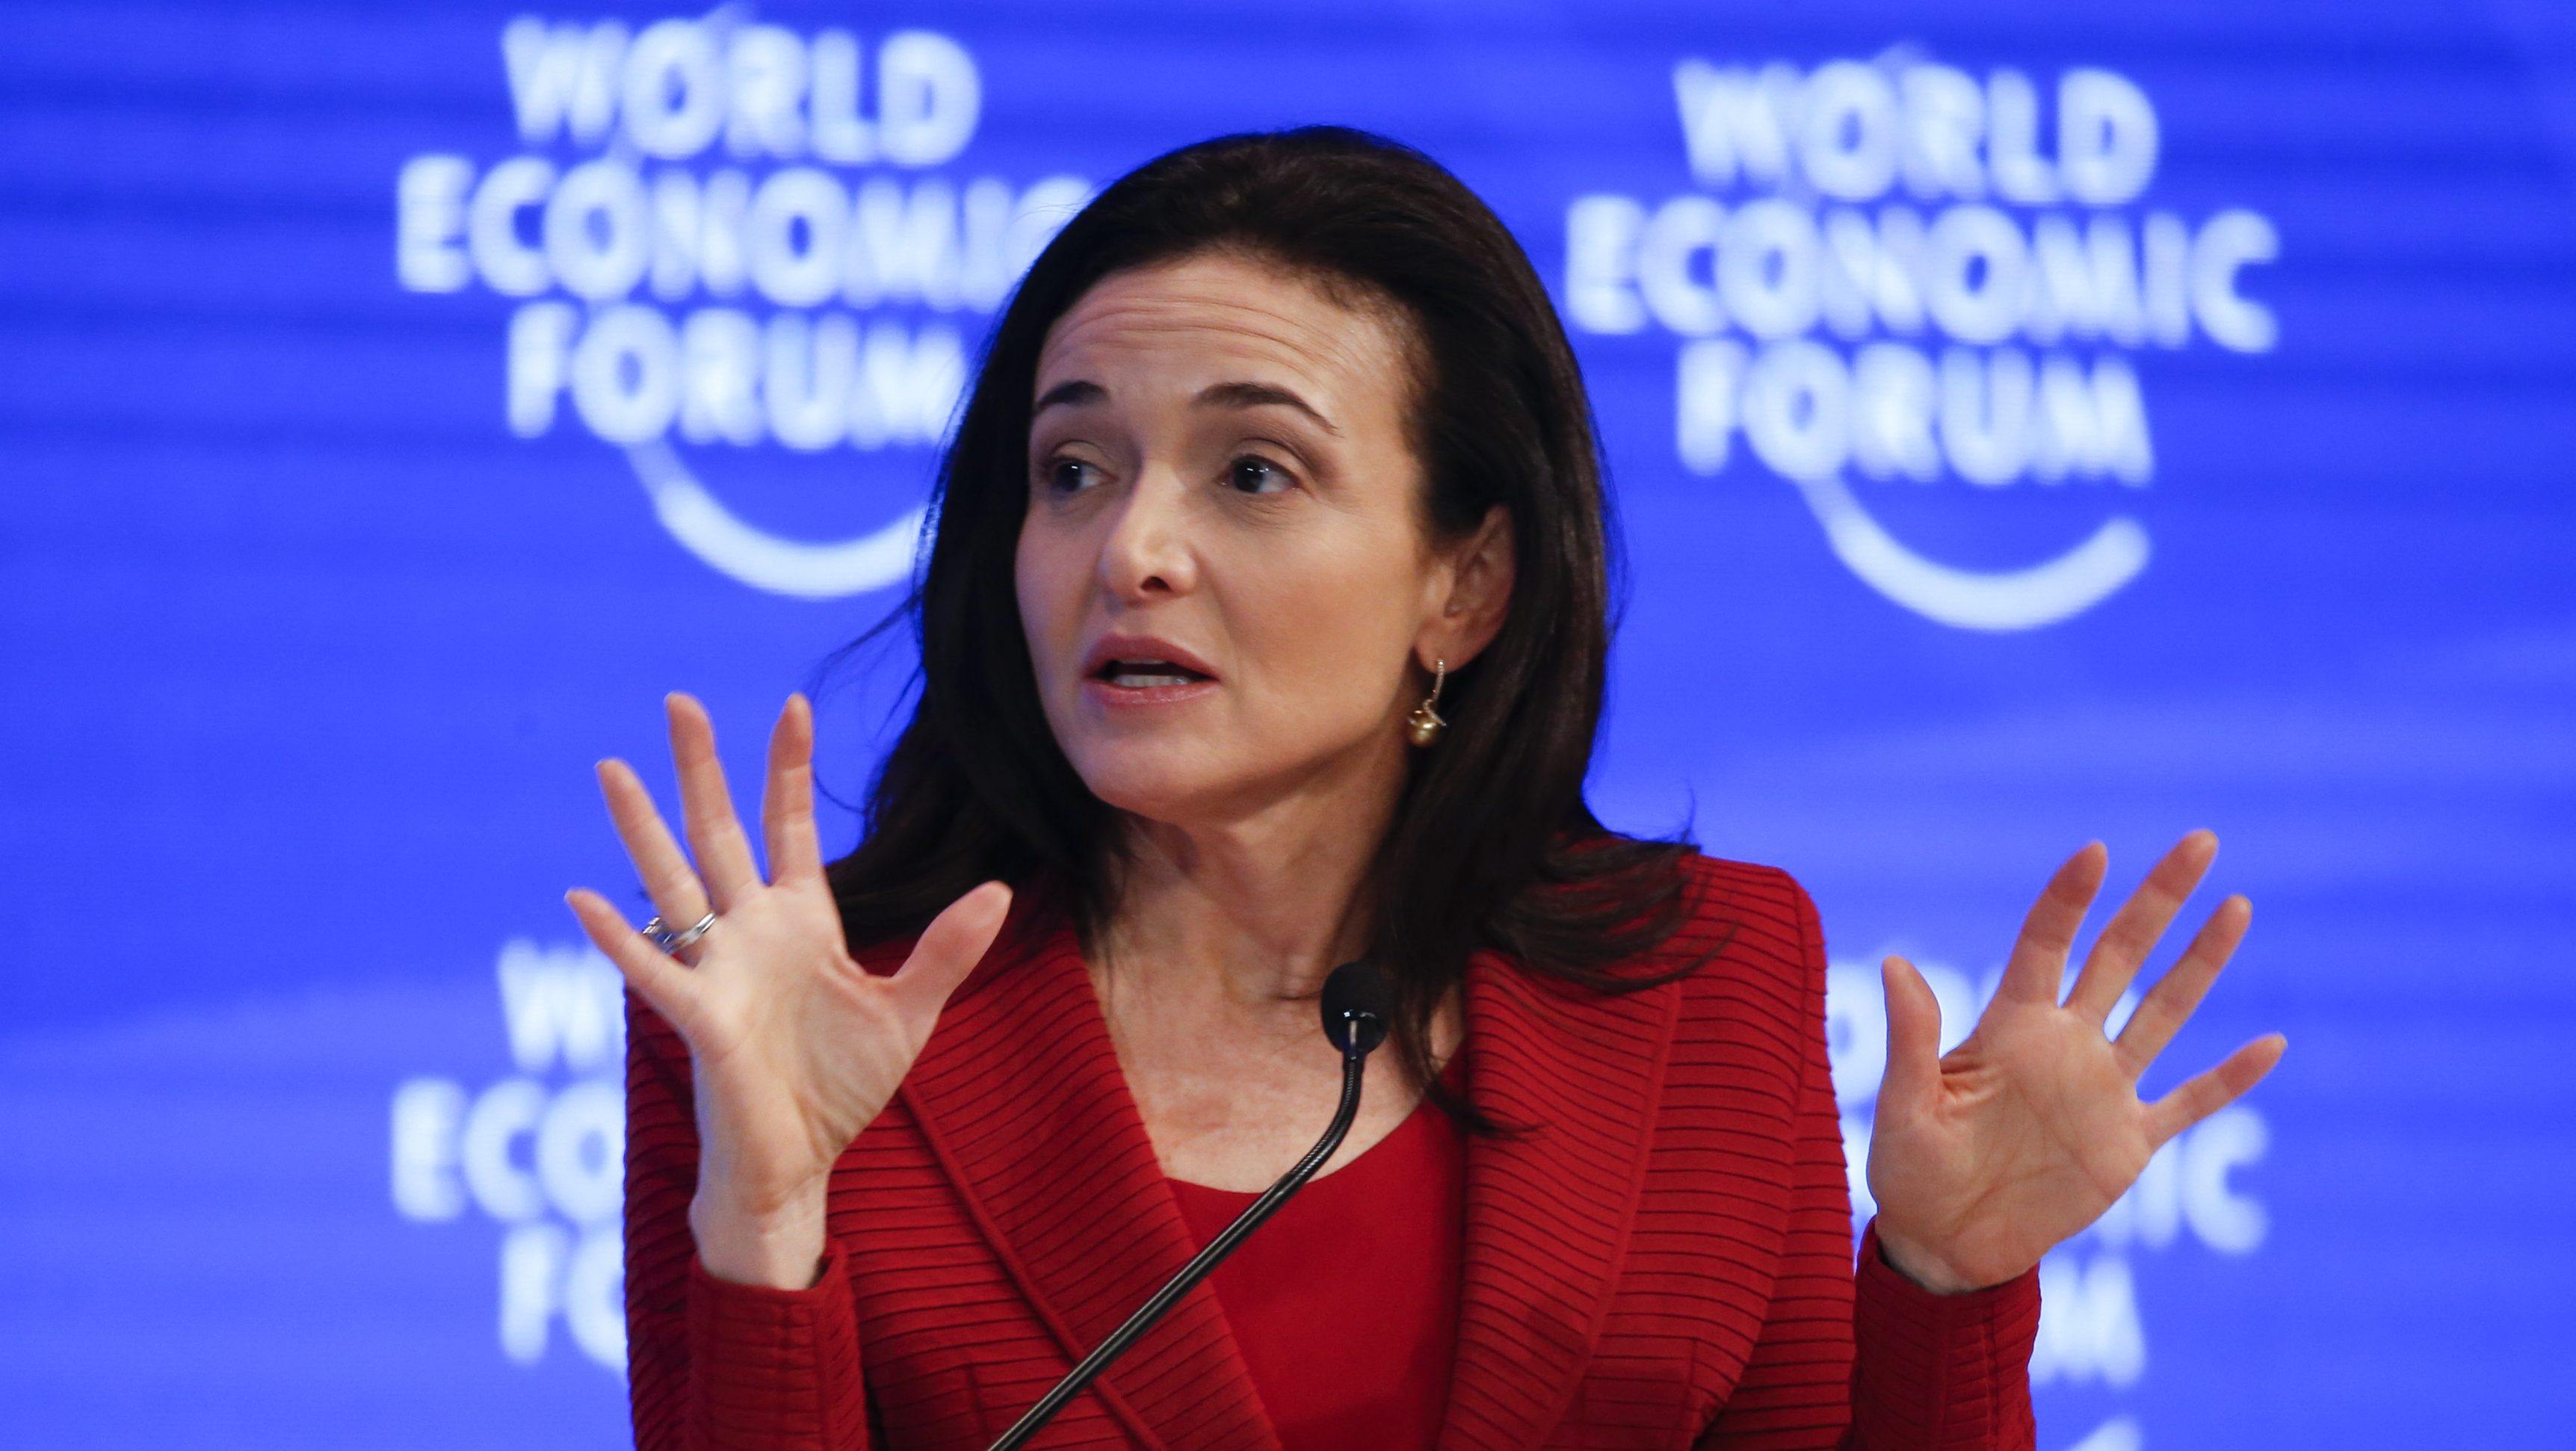 Sheryl Sandberg, Chief Operating Officer and Member of the Board, attends the annual meeting of the World Economic Forum (WEF) in Davos, Switzerland, January 18, 2017. REUTERS/Ruben Sprich - LR1ED1I13ON7Q